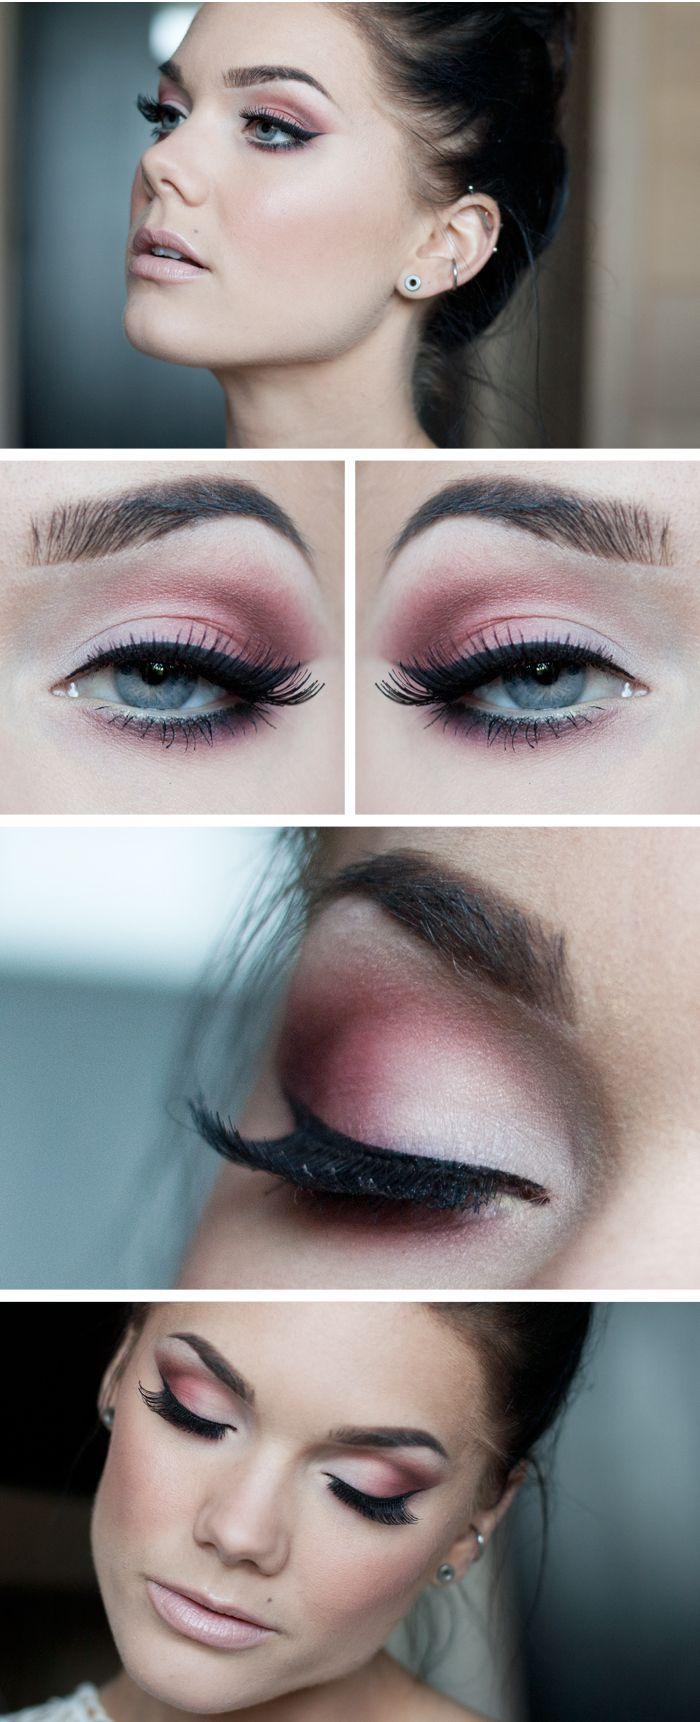 ♥ Linda Hallberg - incredible makeup artist. Very inspiring -- from her daily makeup blog. | Inspiration for an upcoming project by Adagio Images at http://www.adagio-images... or http://www.facebook.com/... | #makeup #makeupinspiration ♥